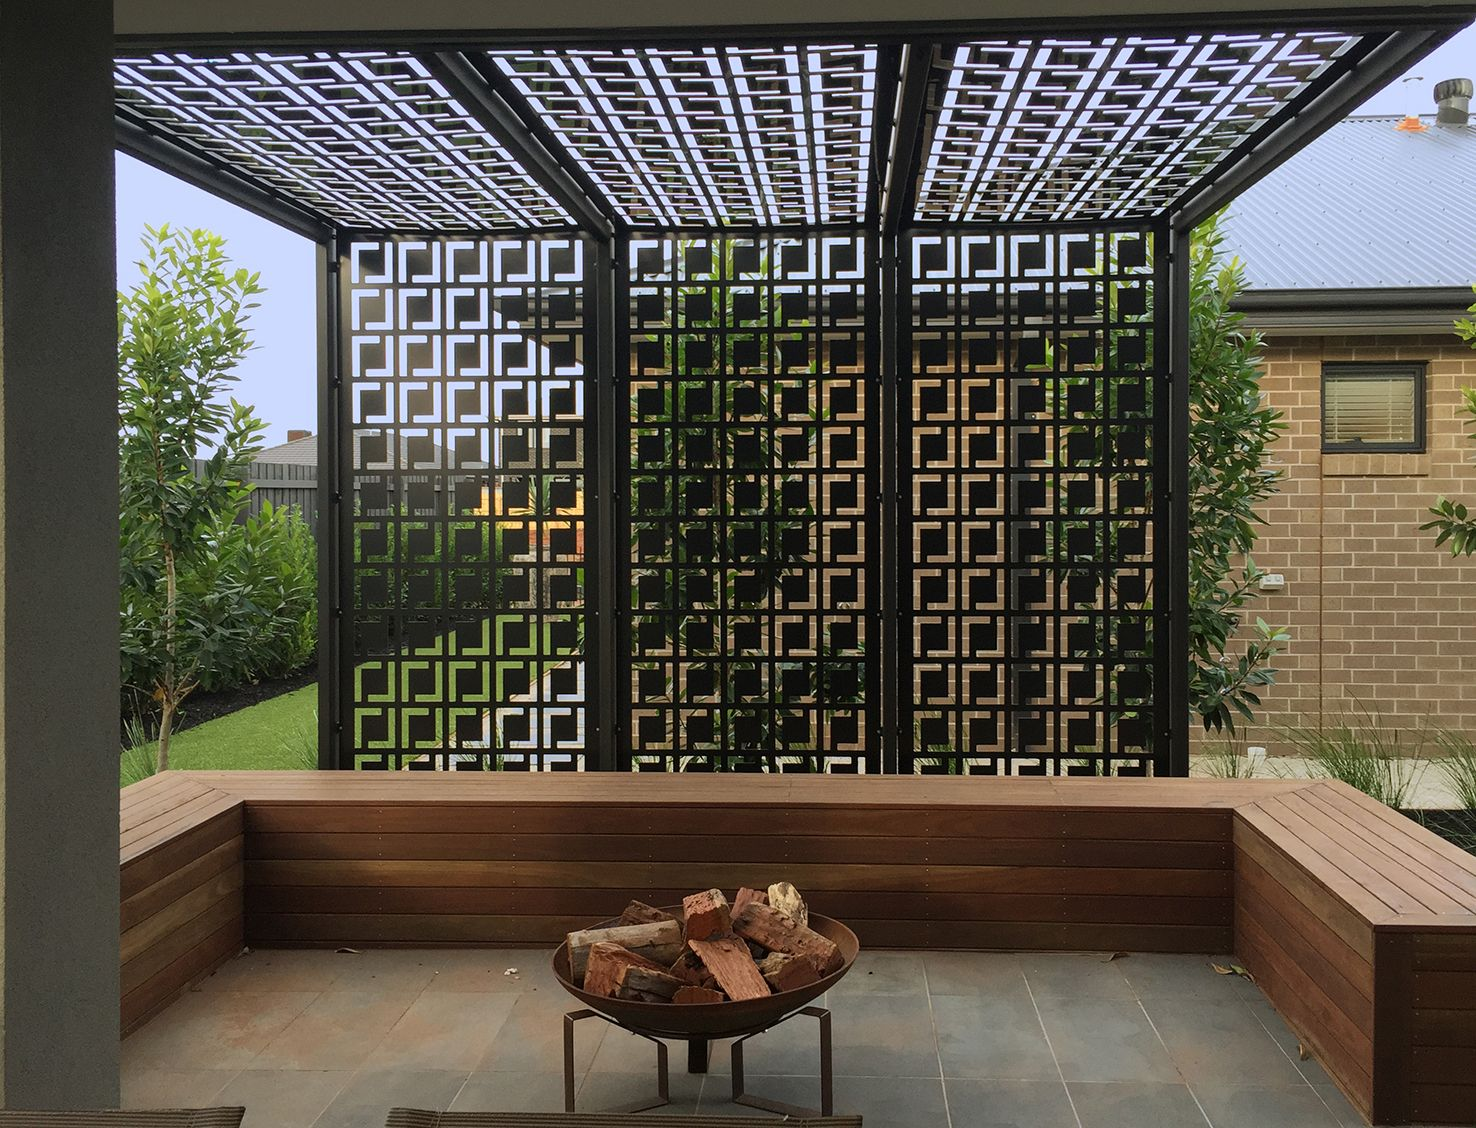 Pergola privacy screen made using decorative screens Screens for outdoor areas